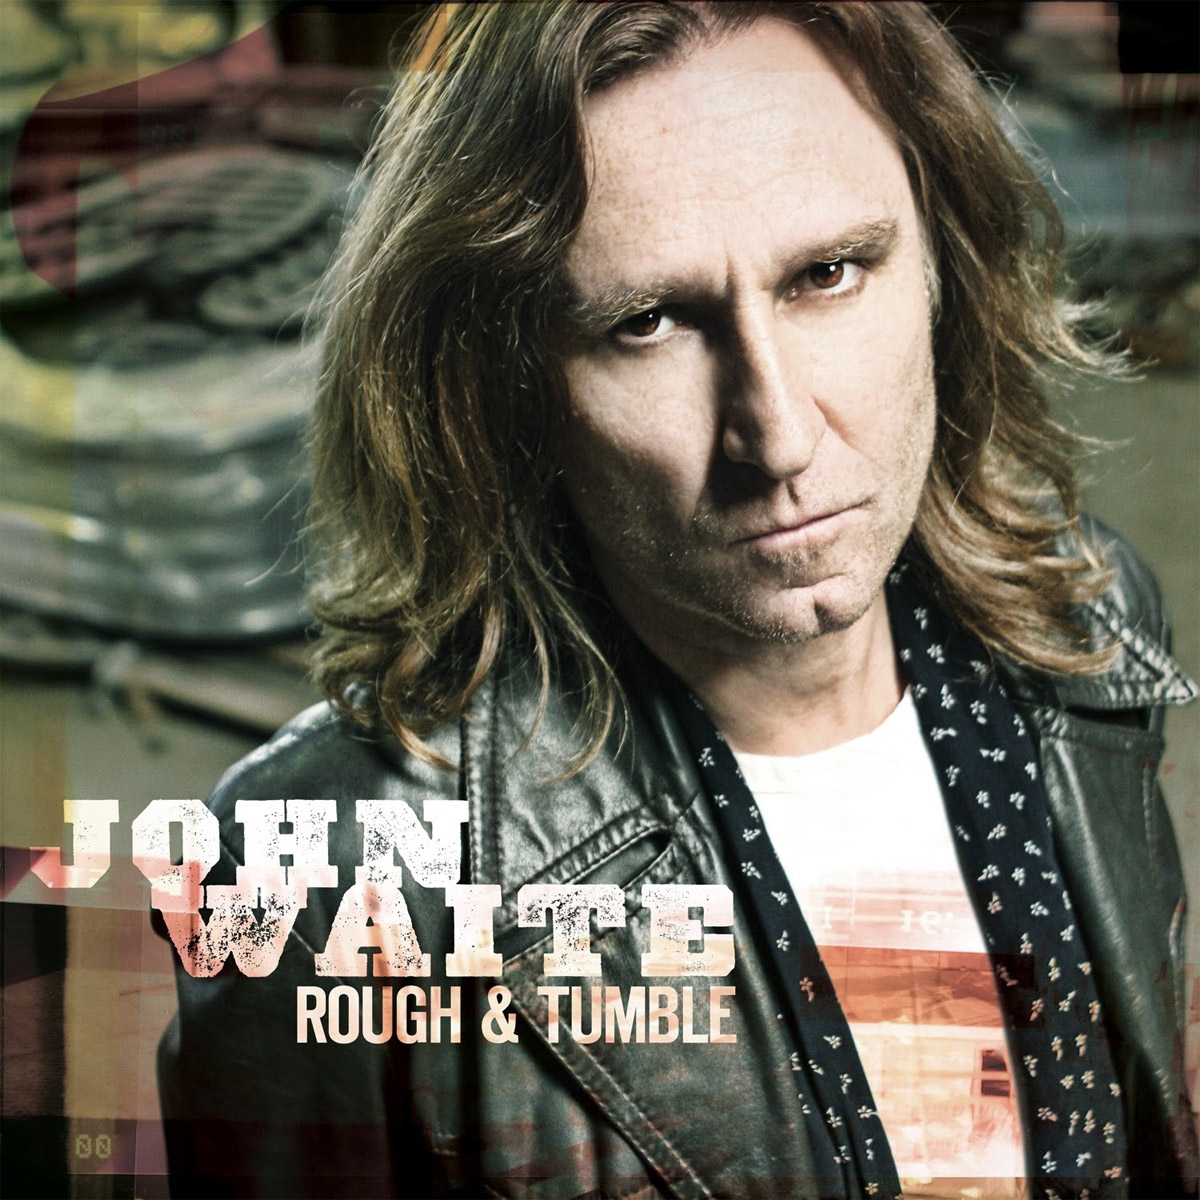 John Waite - Rough & Tumble